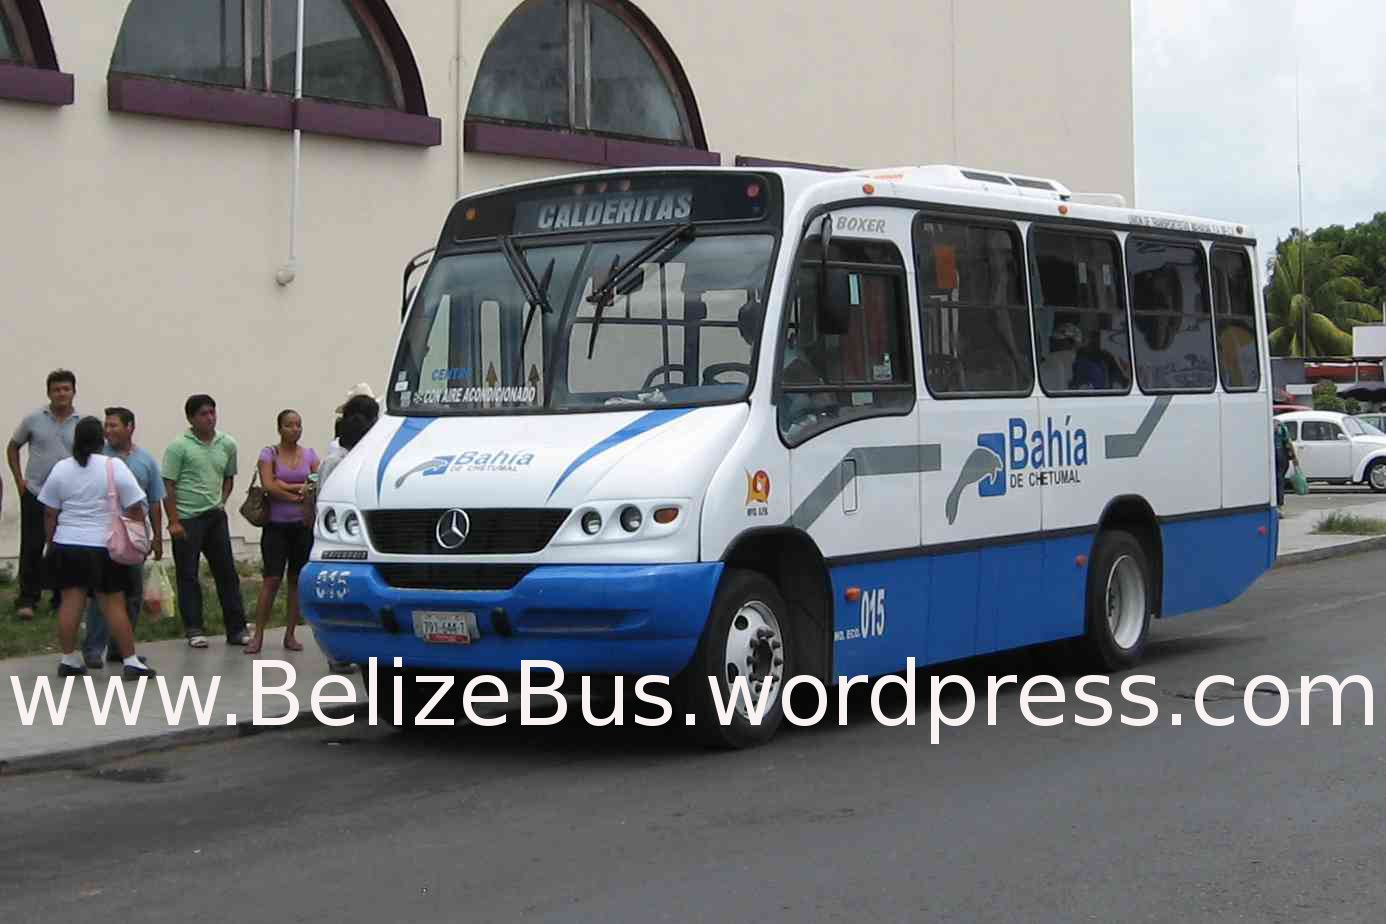 Usps Tracking   Customer Receipt Belize Bus And Travel Guide  Belize Bus Schedules  Travel  What Is The Best Invoice Software Word with Neat Receipt Scanner Driver Excel Chetumal  Taxi Receipt Generator Pdf